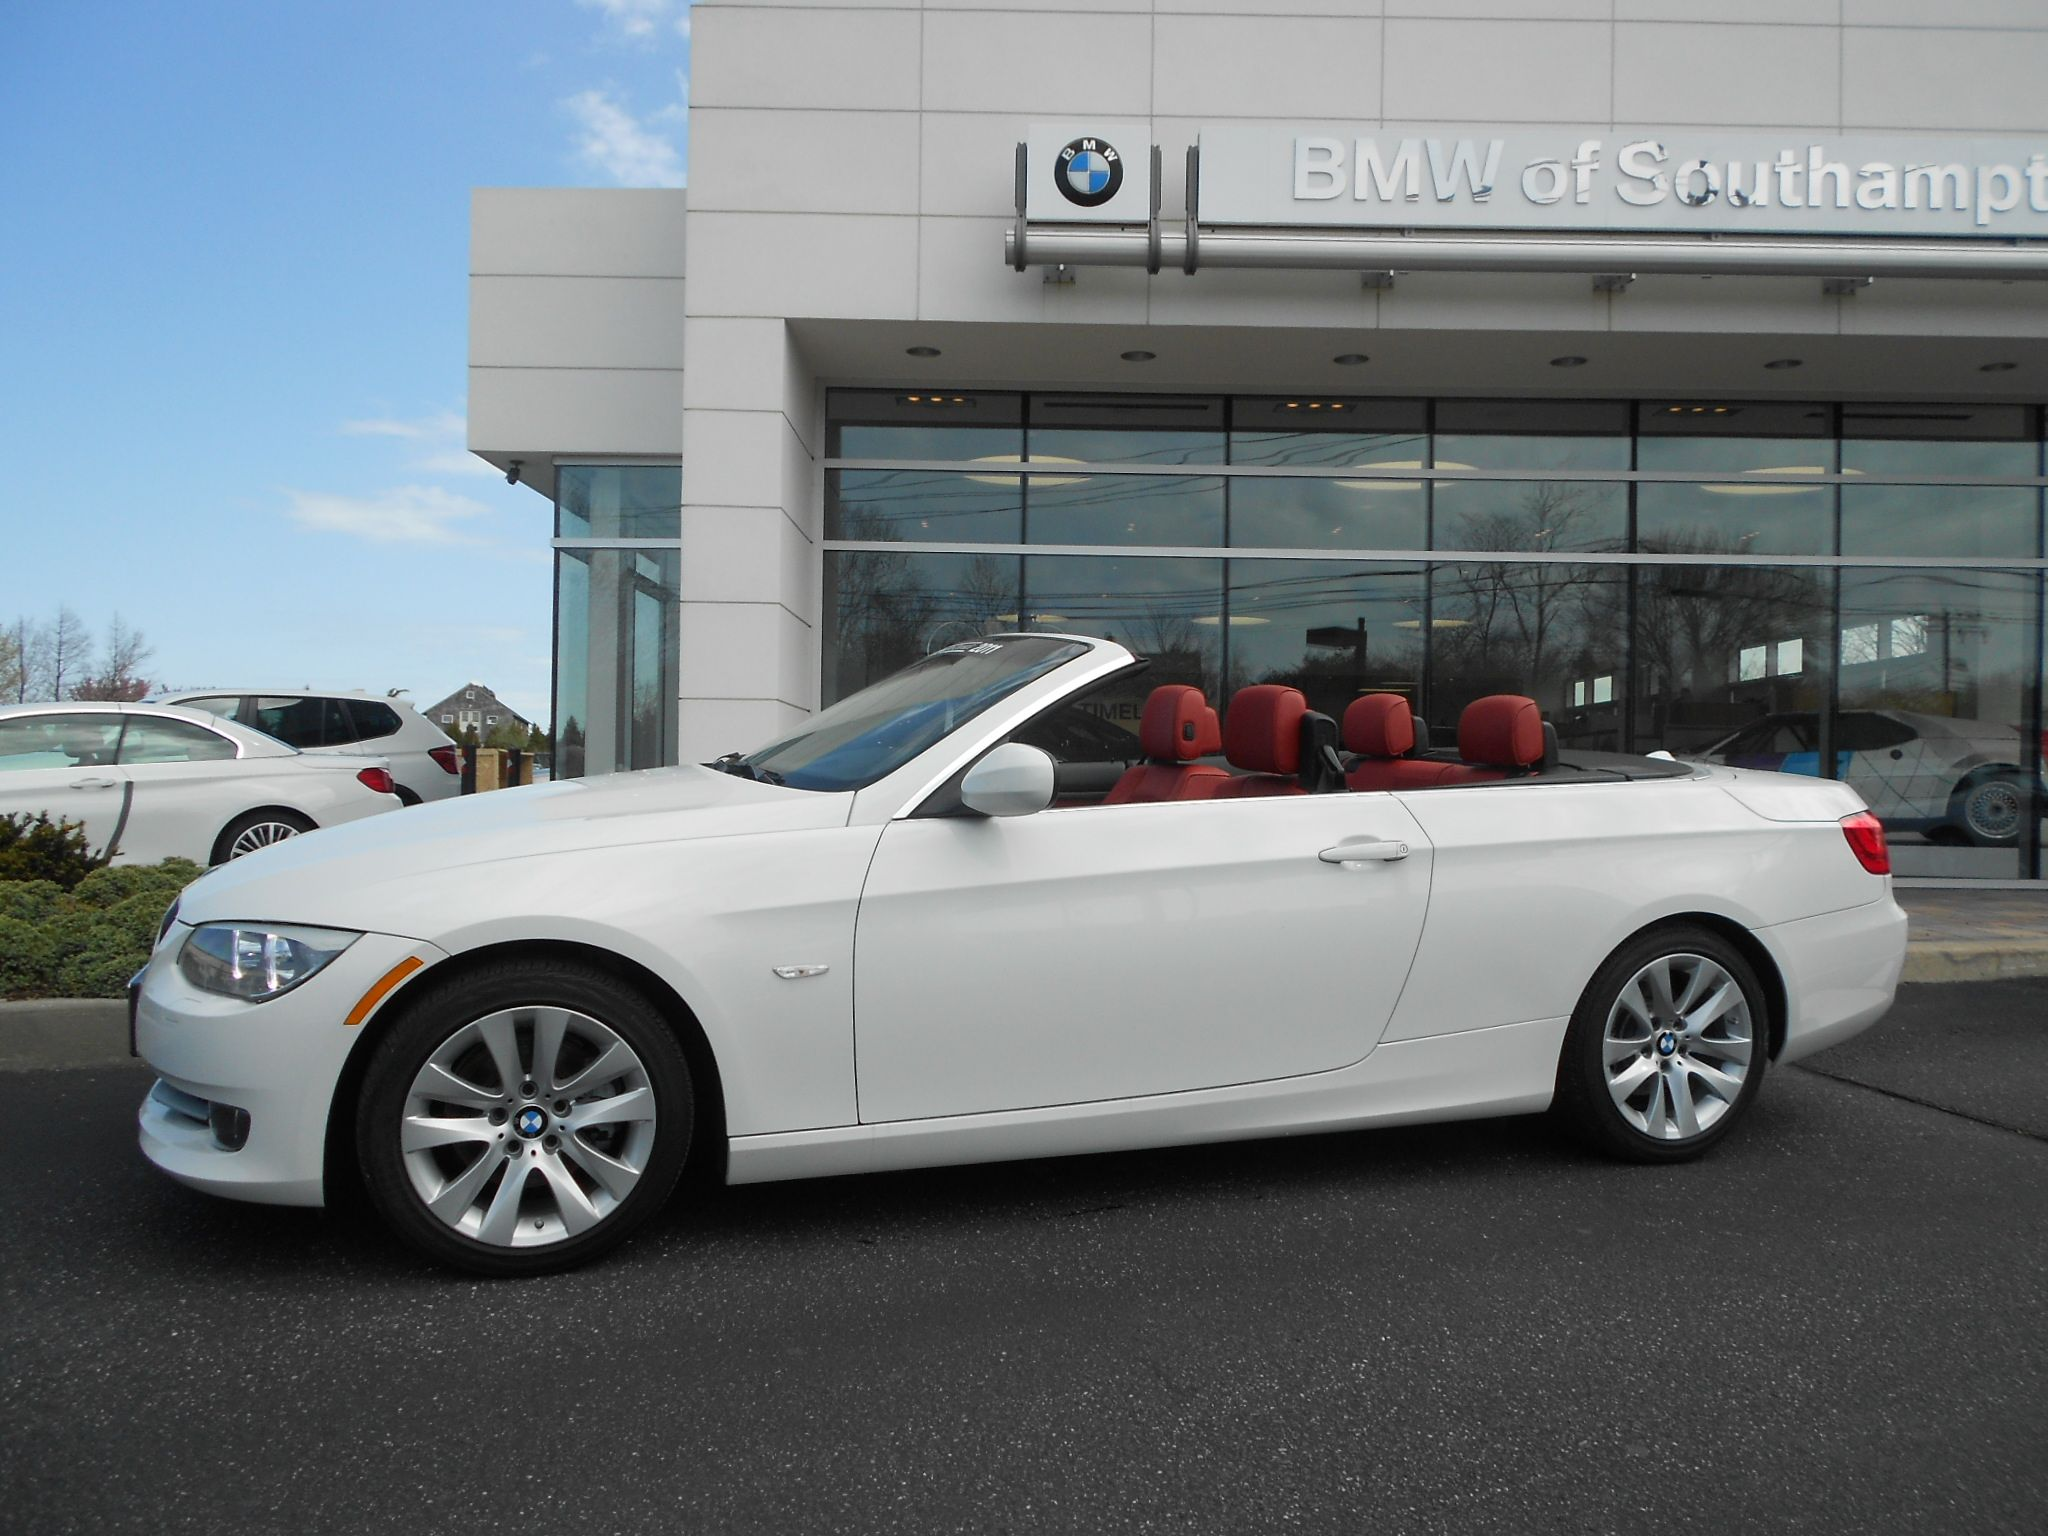 medium resolution of certified used 2011 bmw 328i convertible 3 for sale in southampton ny wbadw7c58be542725 2011bmw bmw328iconvertible bmwconvertible southampton bmw